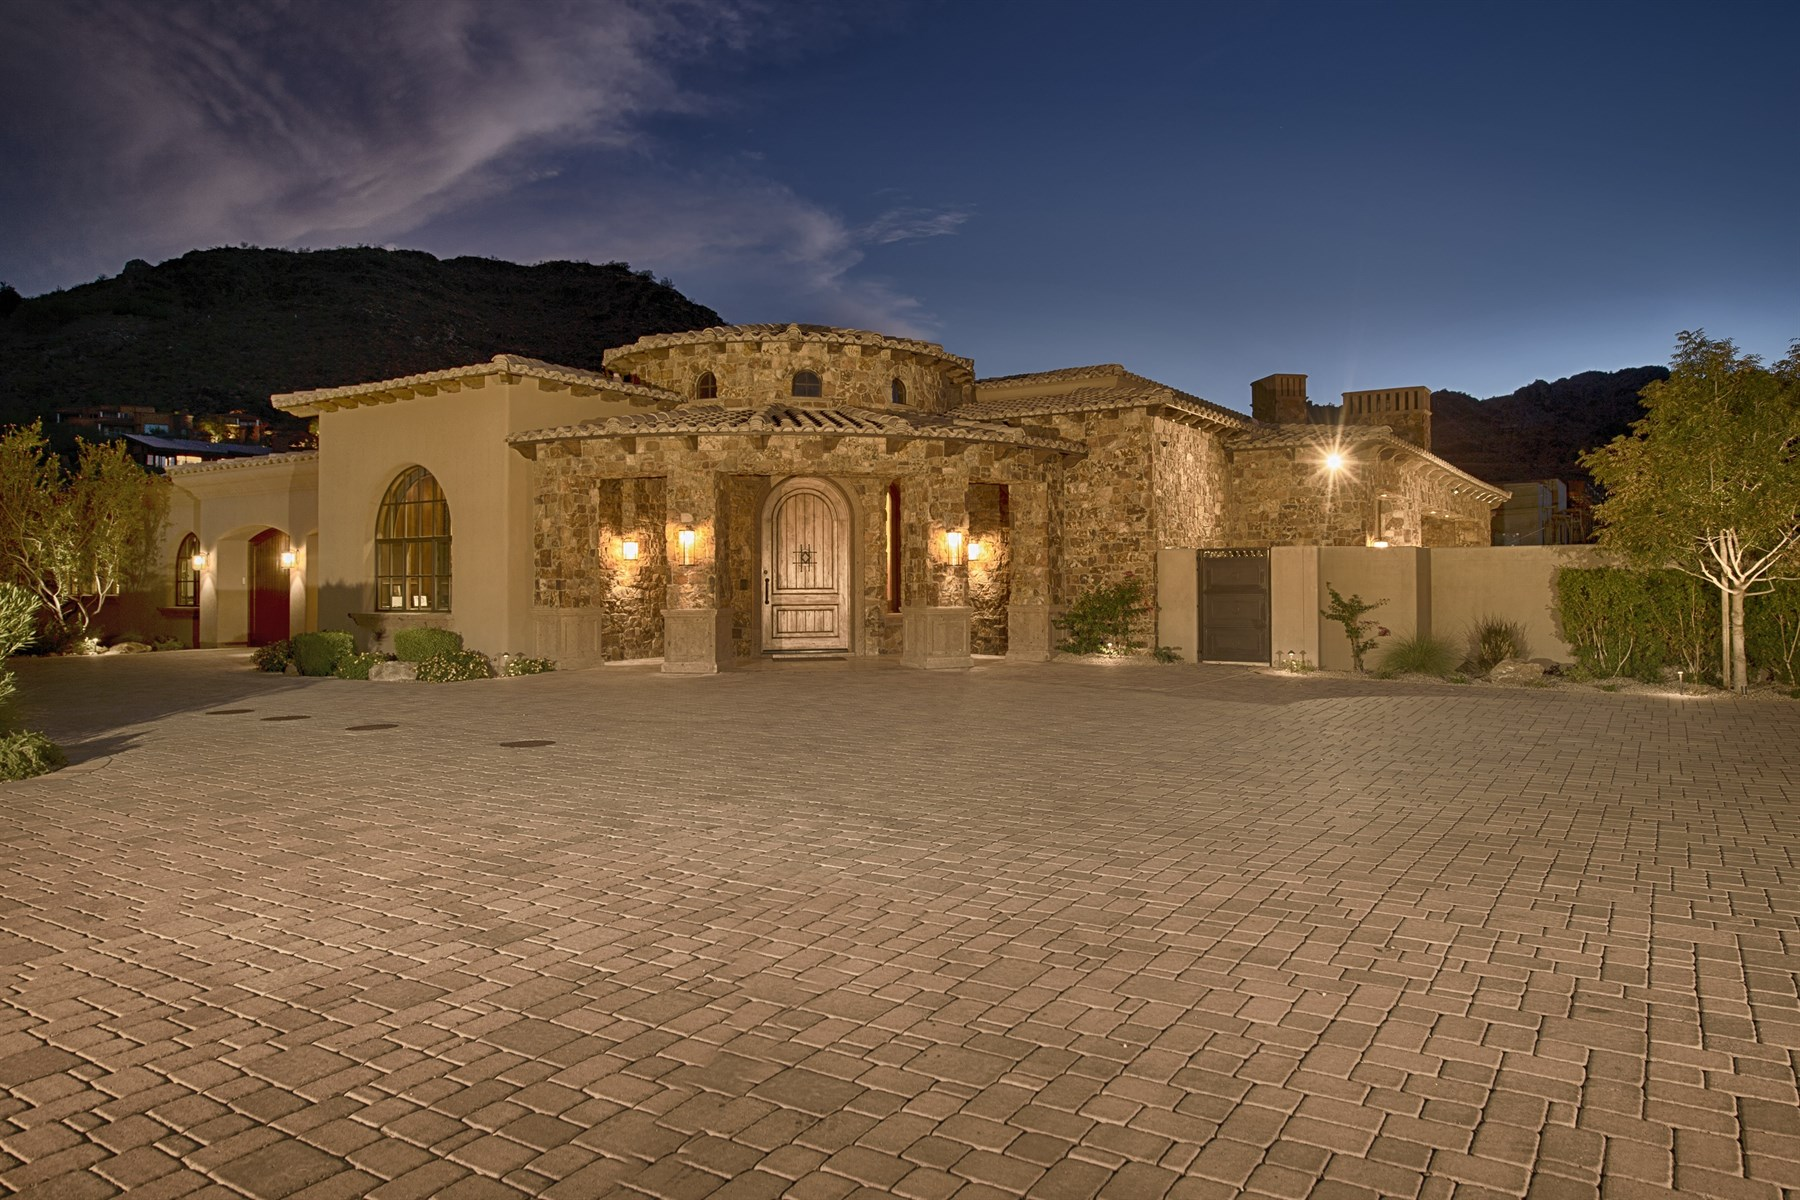 Maison unifamiliale pour l Vente à Inspirational Estate that Blends Old World Elegance with a Contemporary Flair 6324 E Quartz Mountain Rd Paradise Valley, Arizona 85253 États-Unis